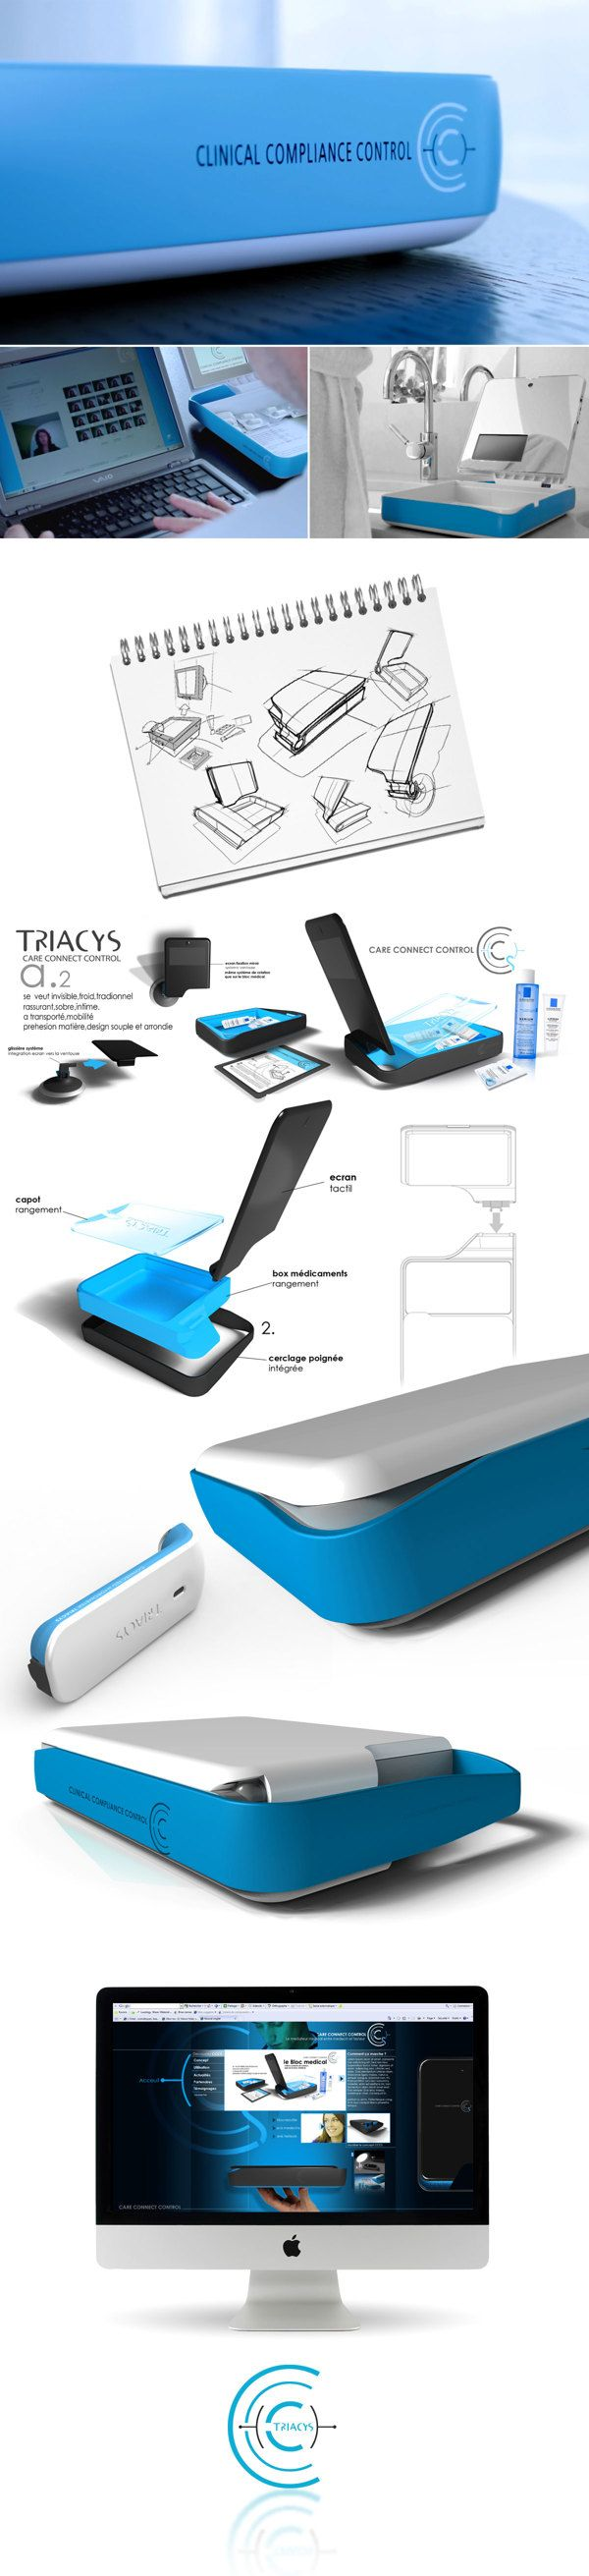 TRIACYS Medical device on Behance